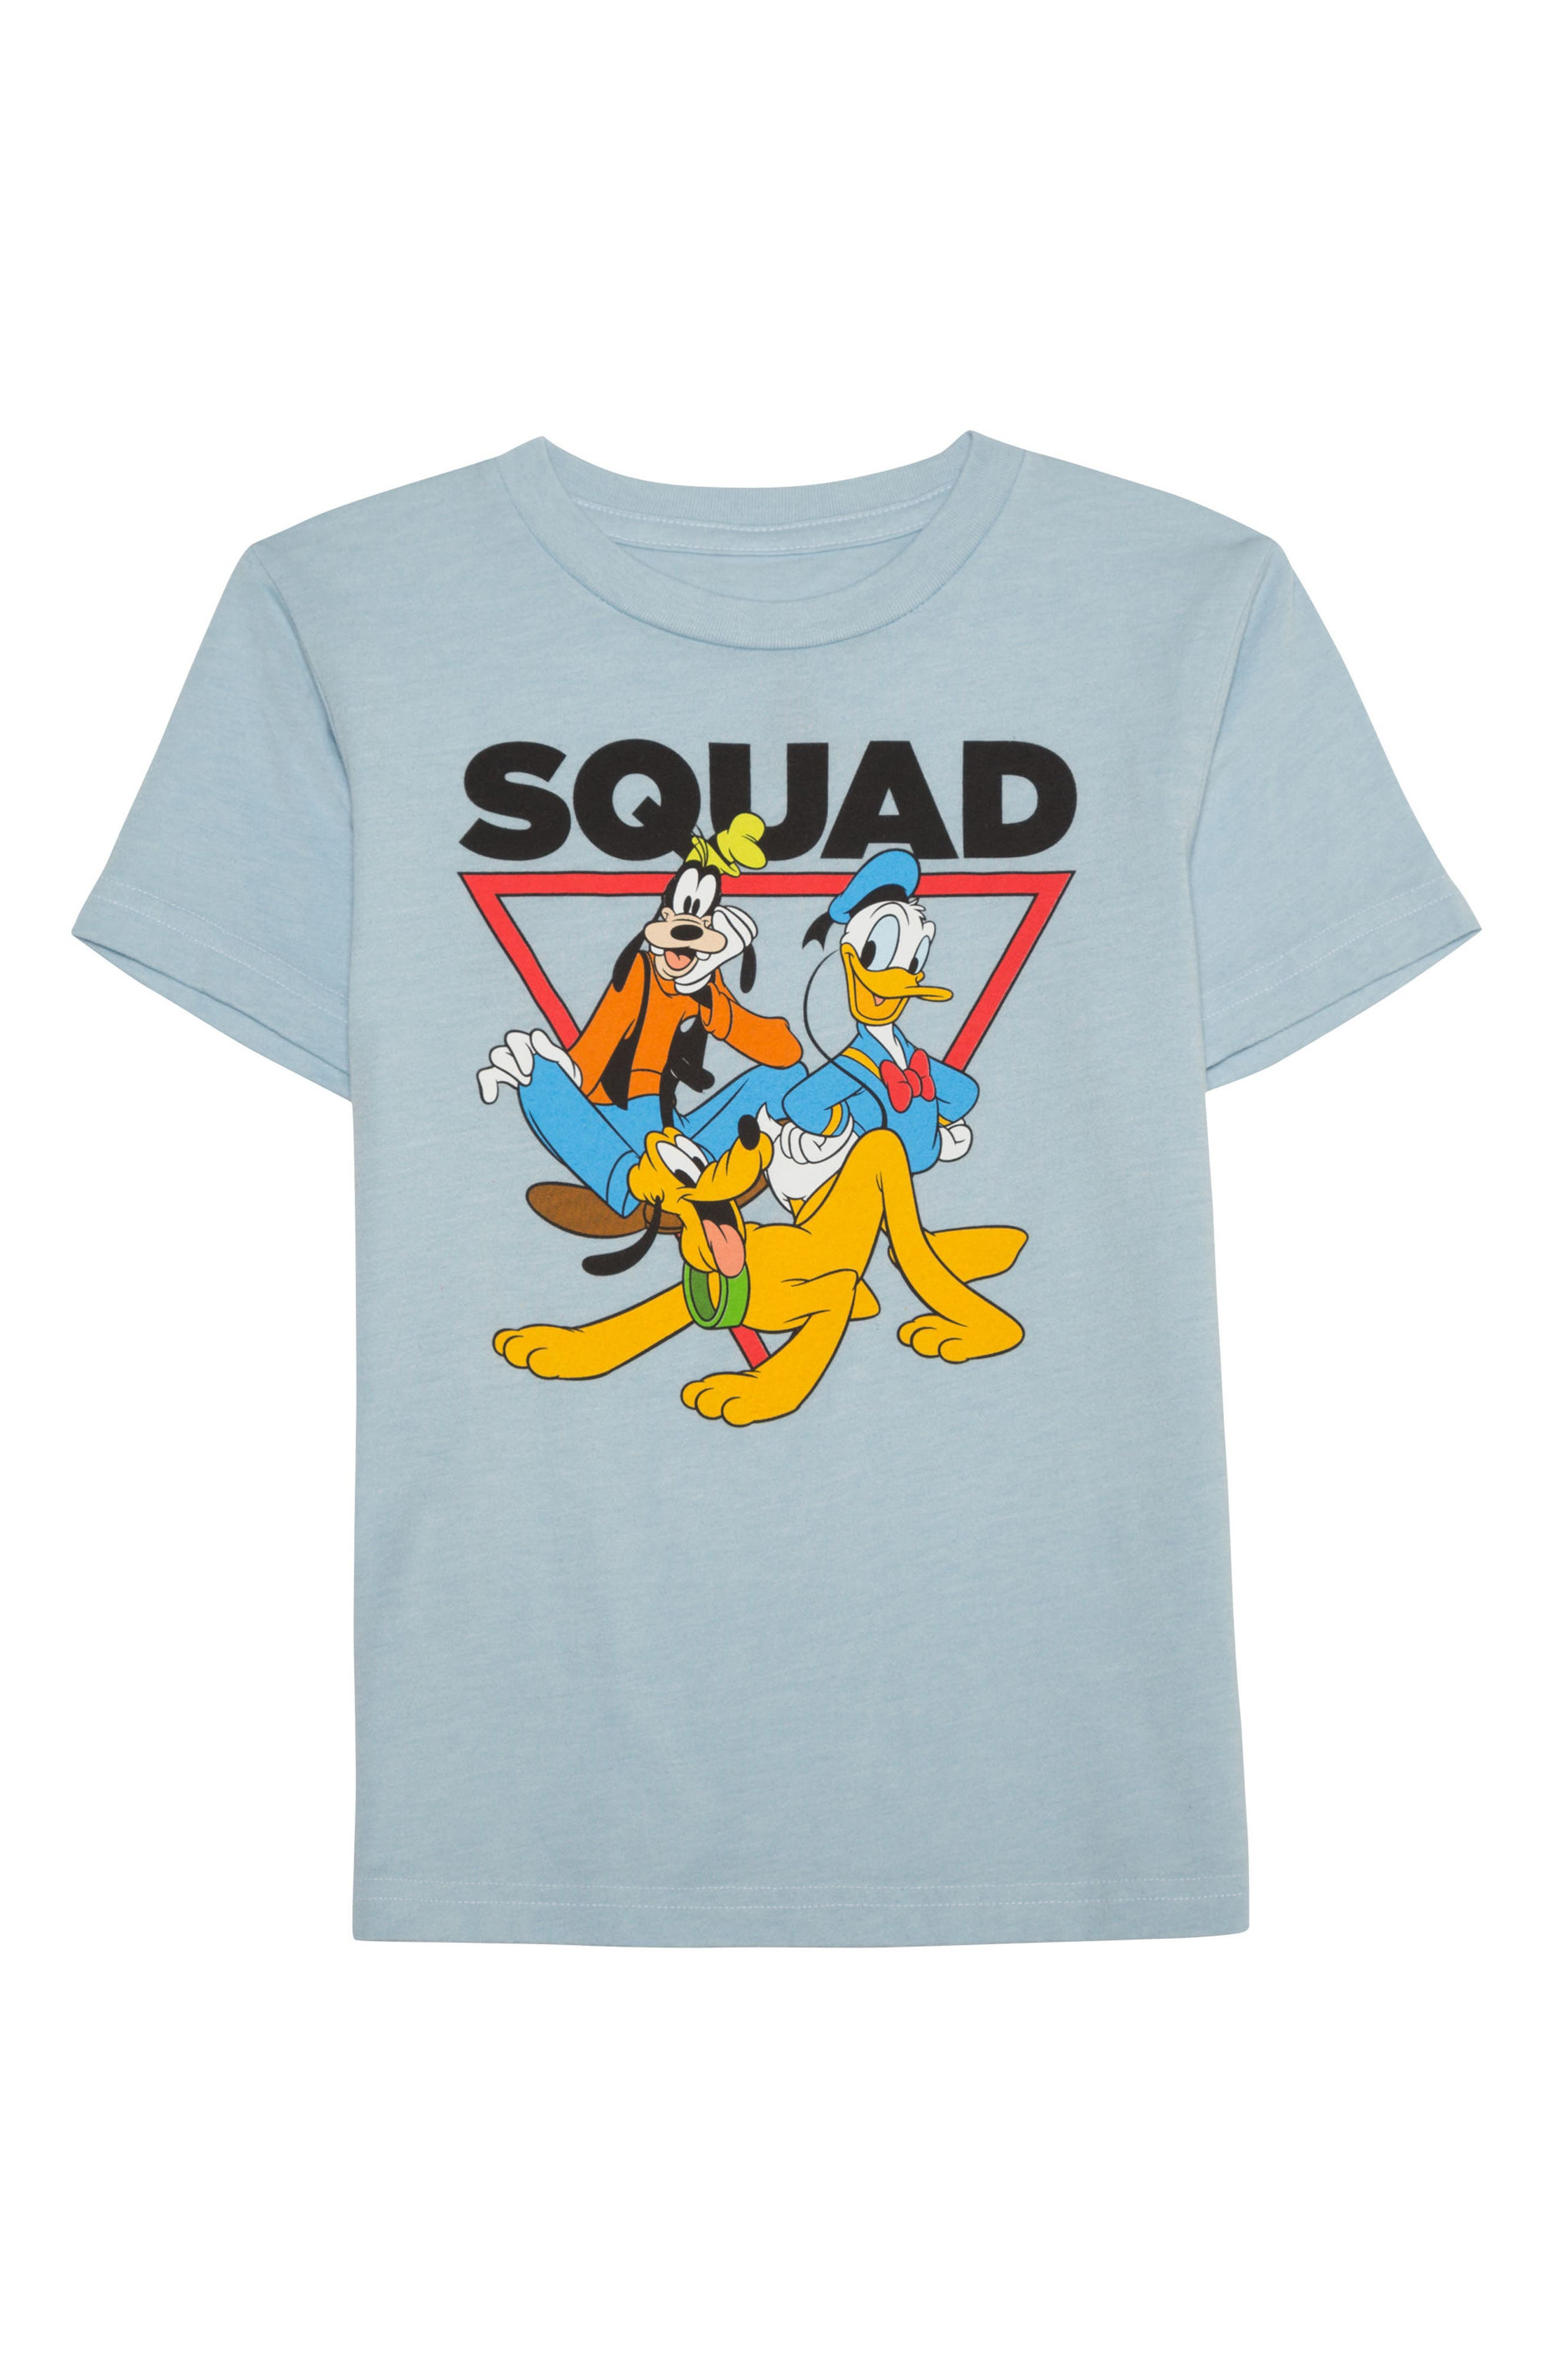 Squad T-Shirt,                         Main,                         color,